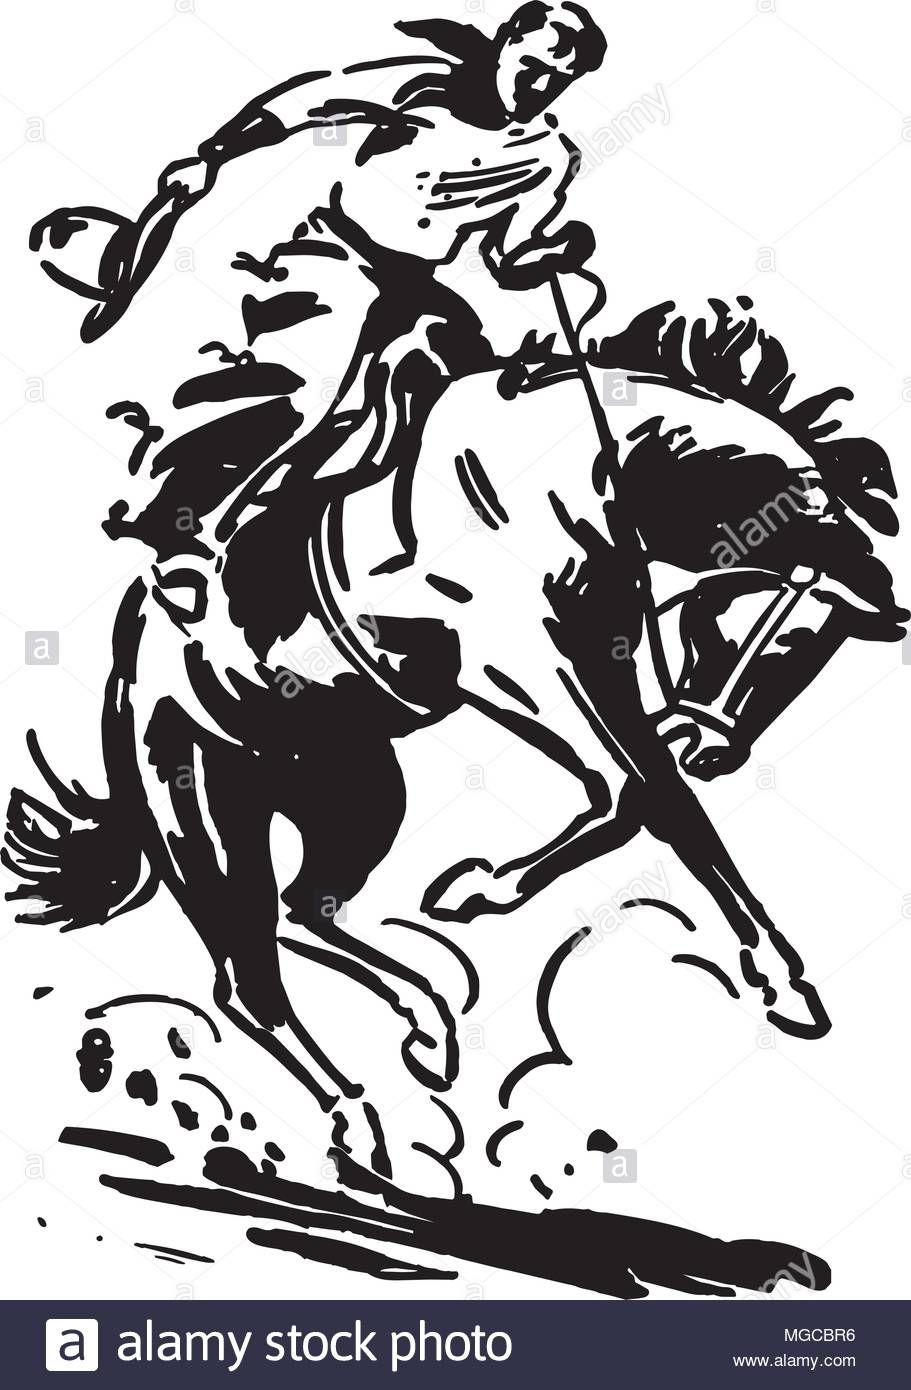 Rodeo Clipart Free Rodeo Free Clip Art Rodeo Rider